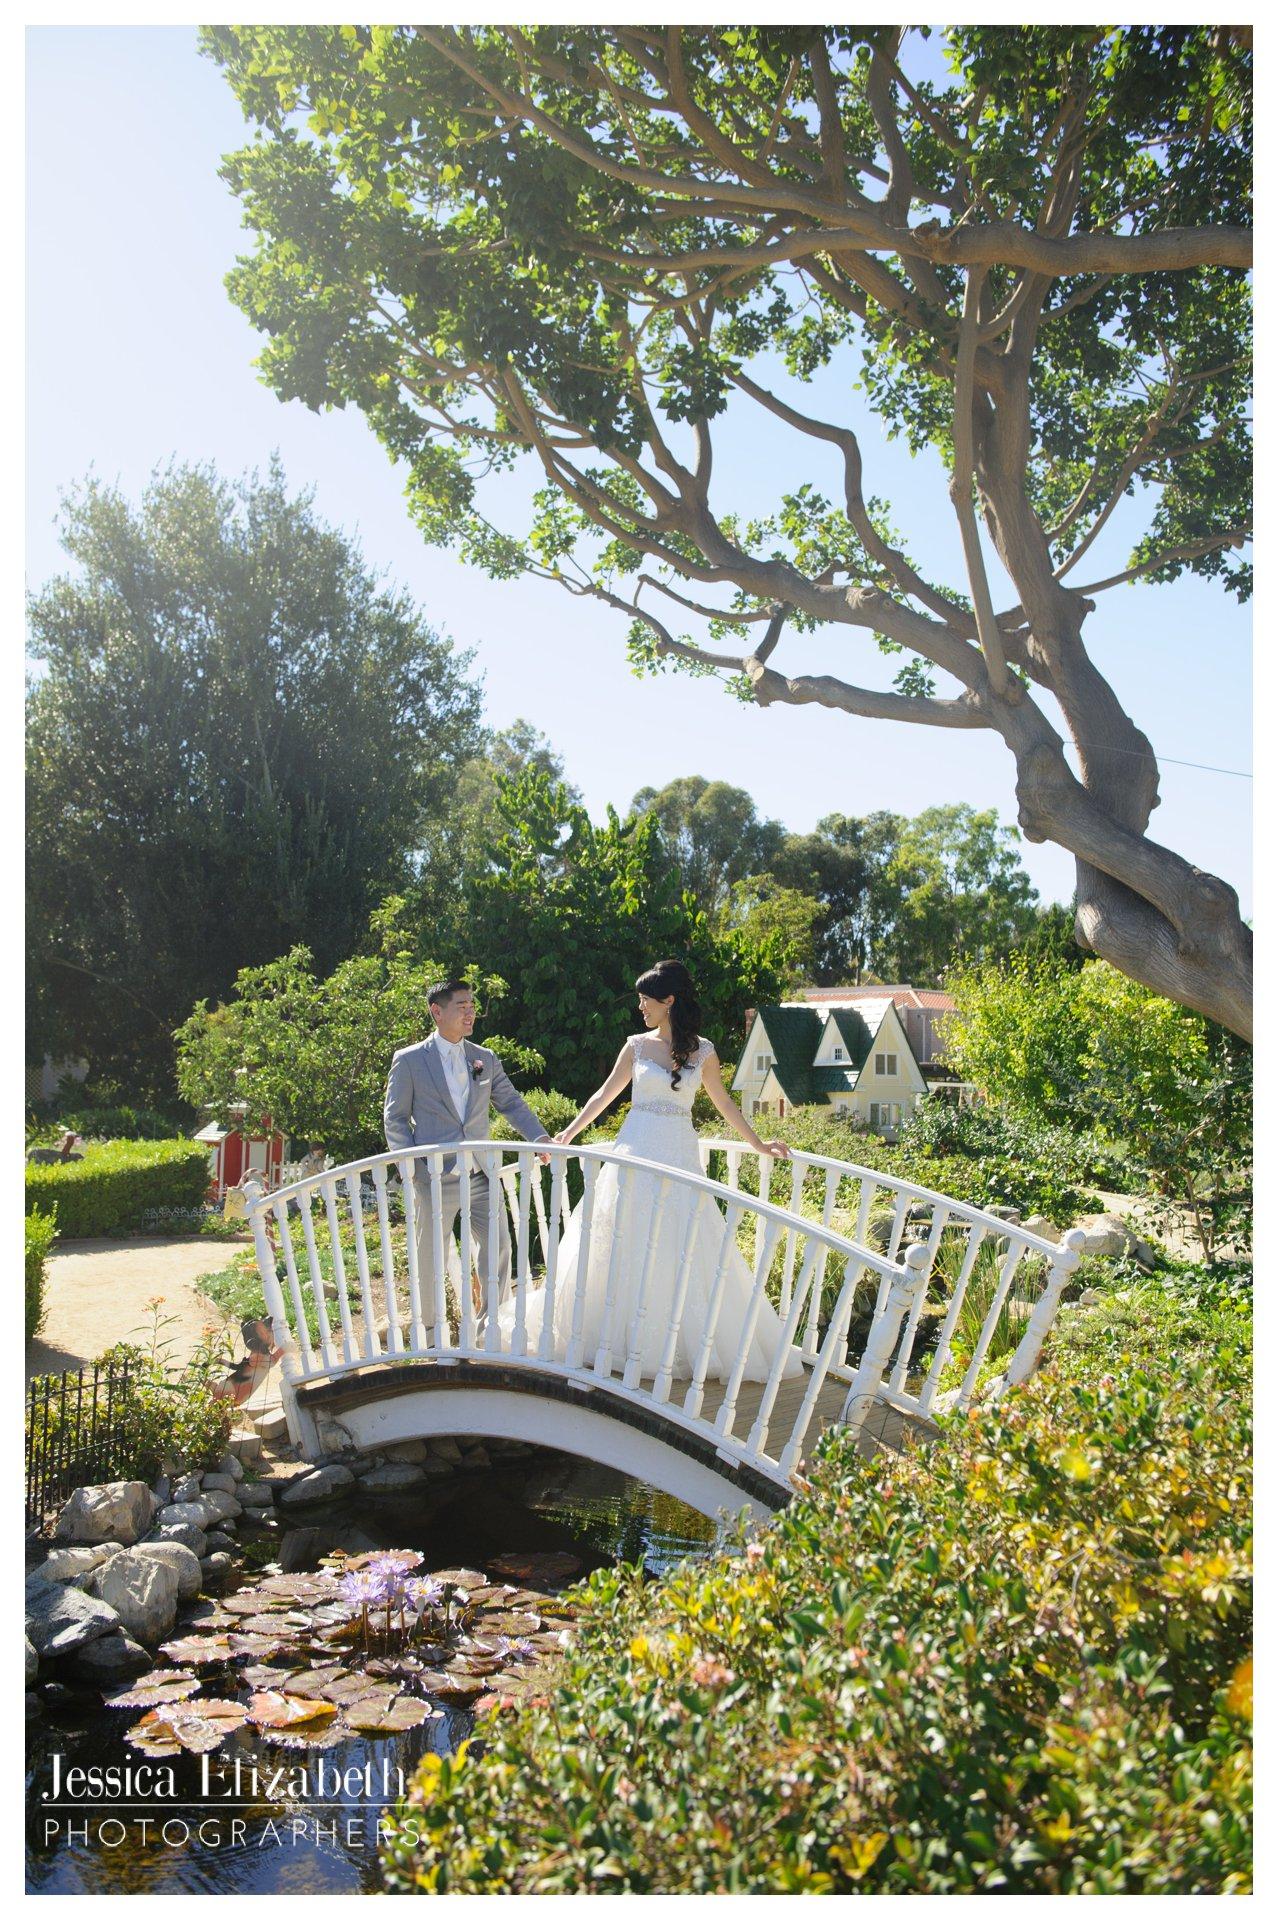 14-South Coast Botanic Garden Palos Verdes Wedding Photography by Jessica Elizabeth